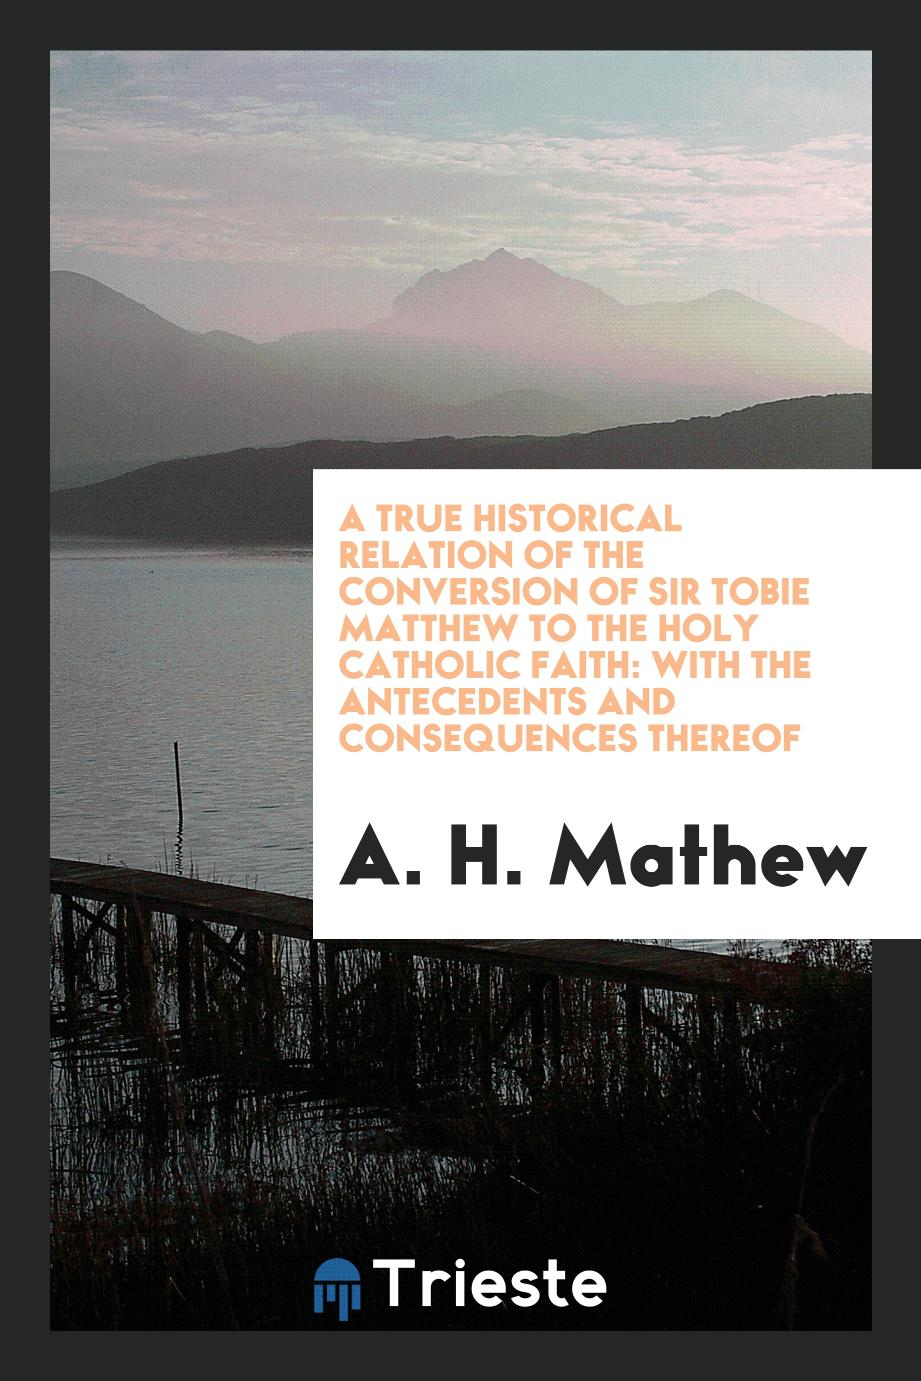 A true historical relation of the conversion of Sir Tobie Matthew to the Holy Catholic faith: with the antecedents and consequences thereof